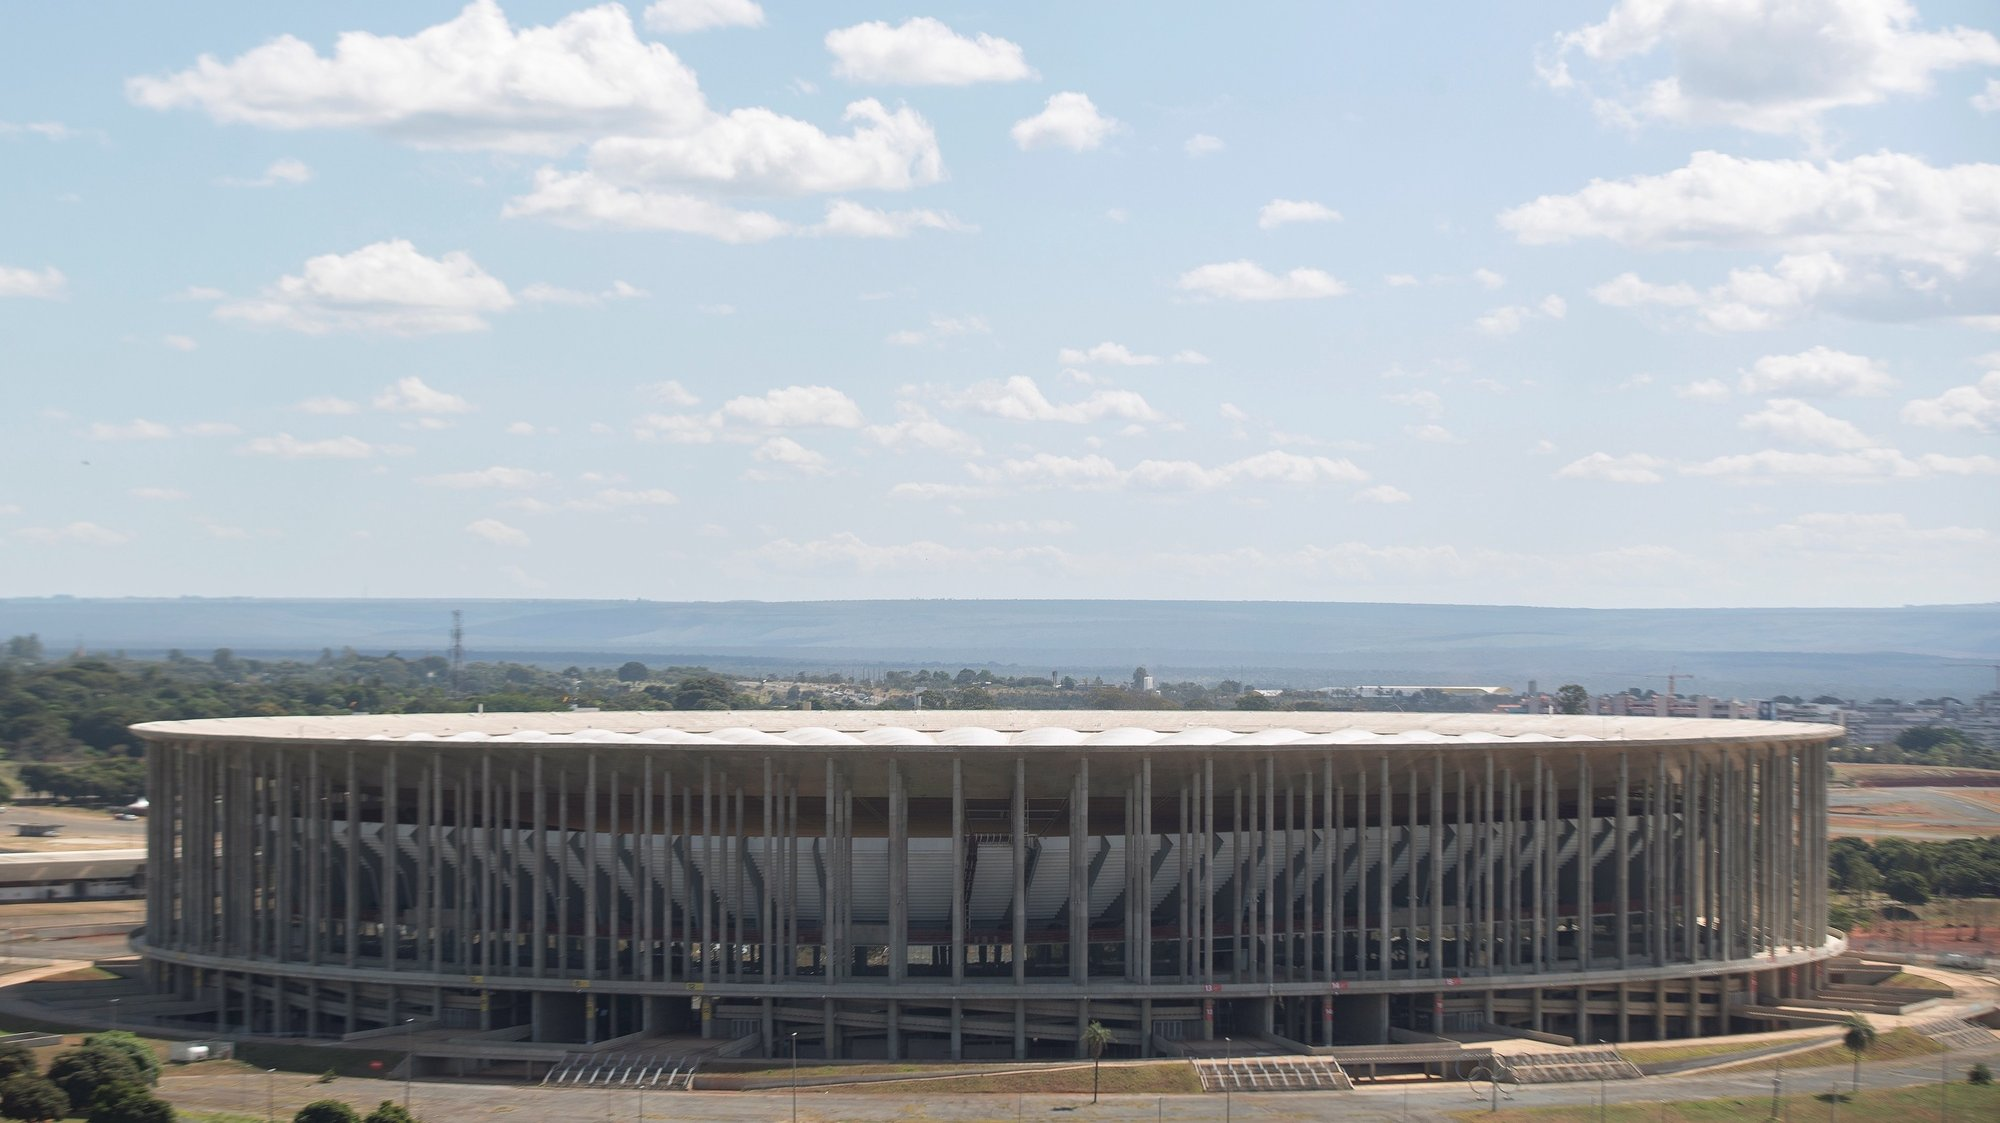 epa09243595 Exterior view of the Mane Garrincha stadium, one of the four venues for the Copa America 2021, in Brasilia, Brazil, 02 June 2021. Conmebol indicated that the cities of Brasilia, Rio de Janeiro, Cuiaba (Matto Grosso) and Goiania (Goias) will host the Copa America, after Argentina and Colombia gave up being the tournament venues, as was originally planned, due to the coronavirus pandemic.  EPA/Joedson Alves